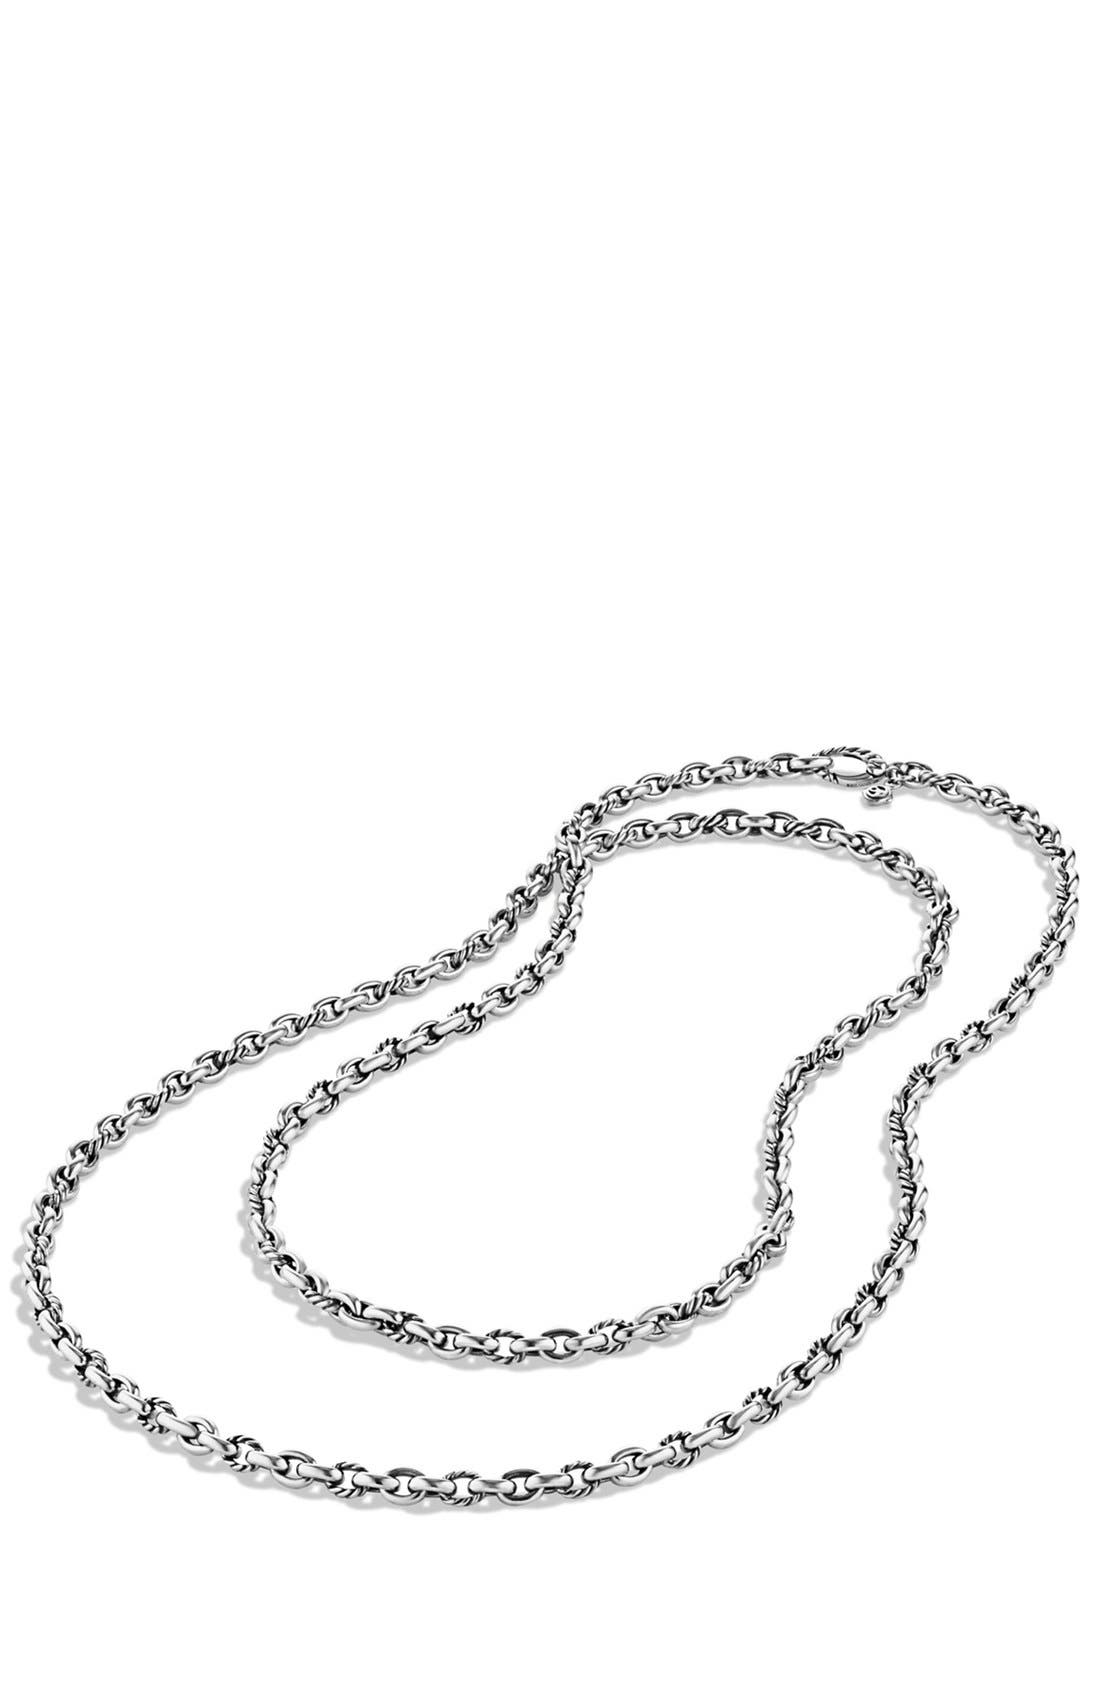 Oval Link Necklace,                             Alternate thumbnail 3, color,                             Silver